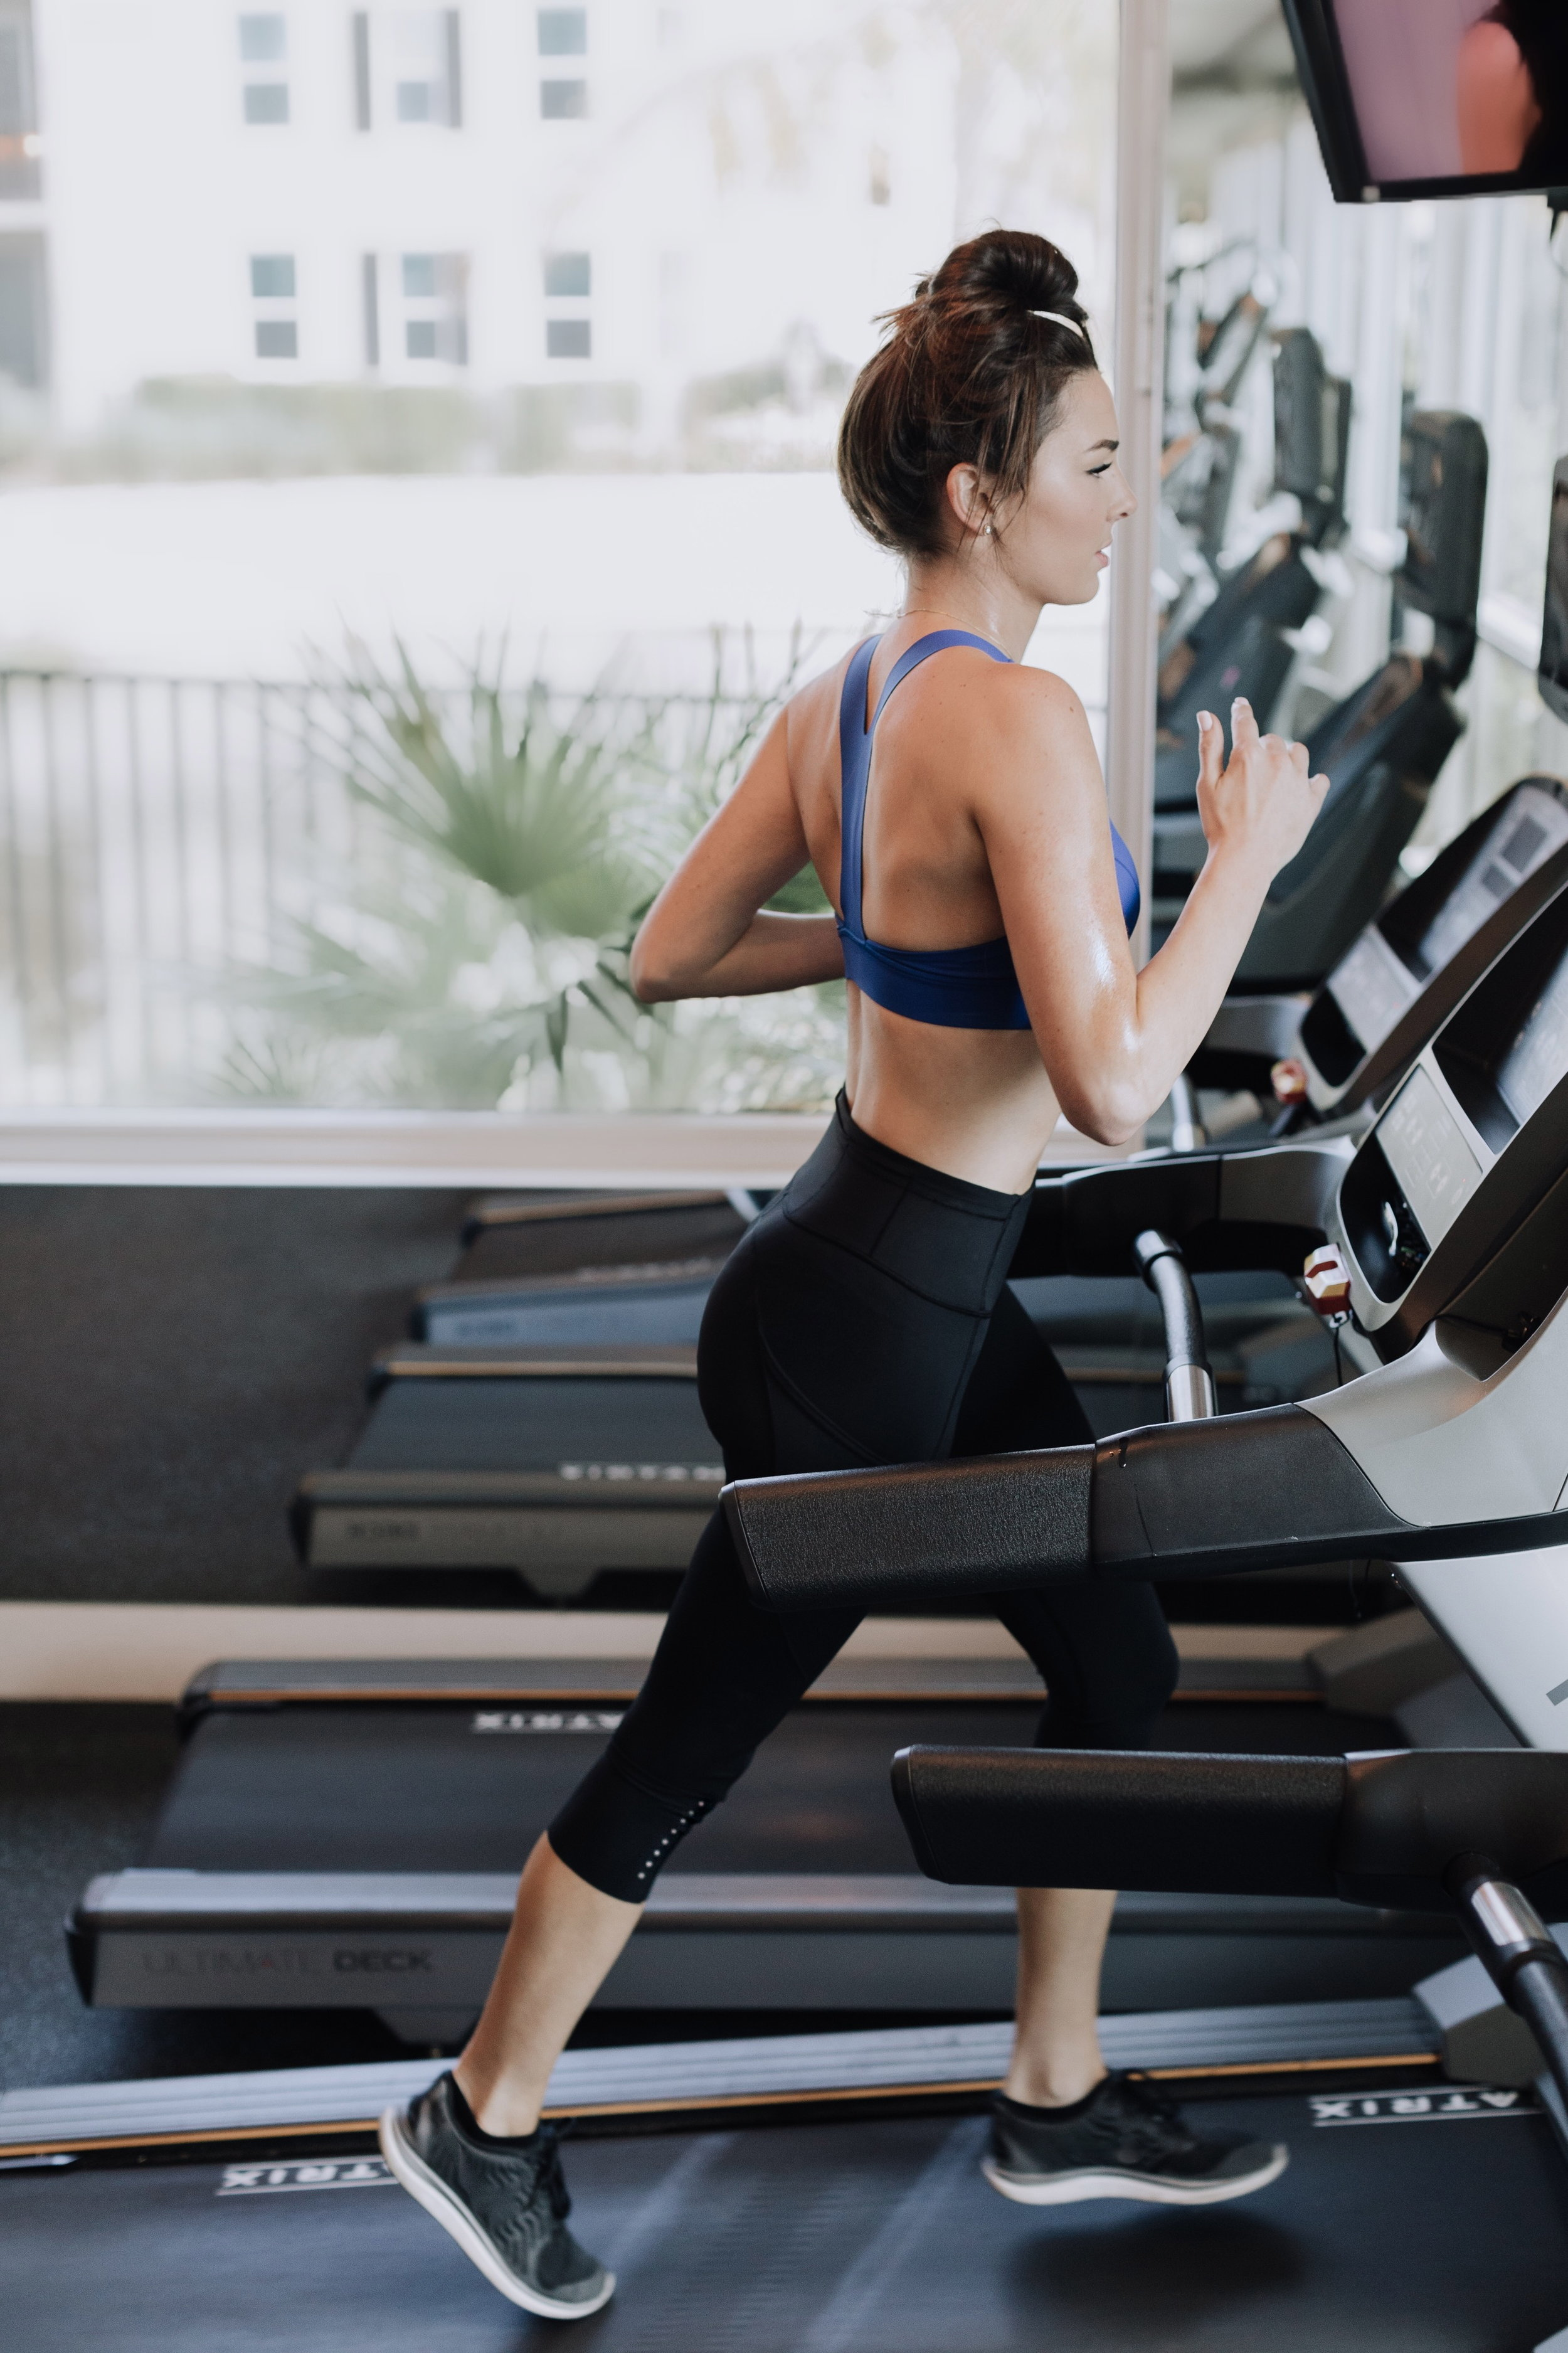 (1 min sprint intervals combined with speed walking at an incline)